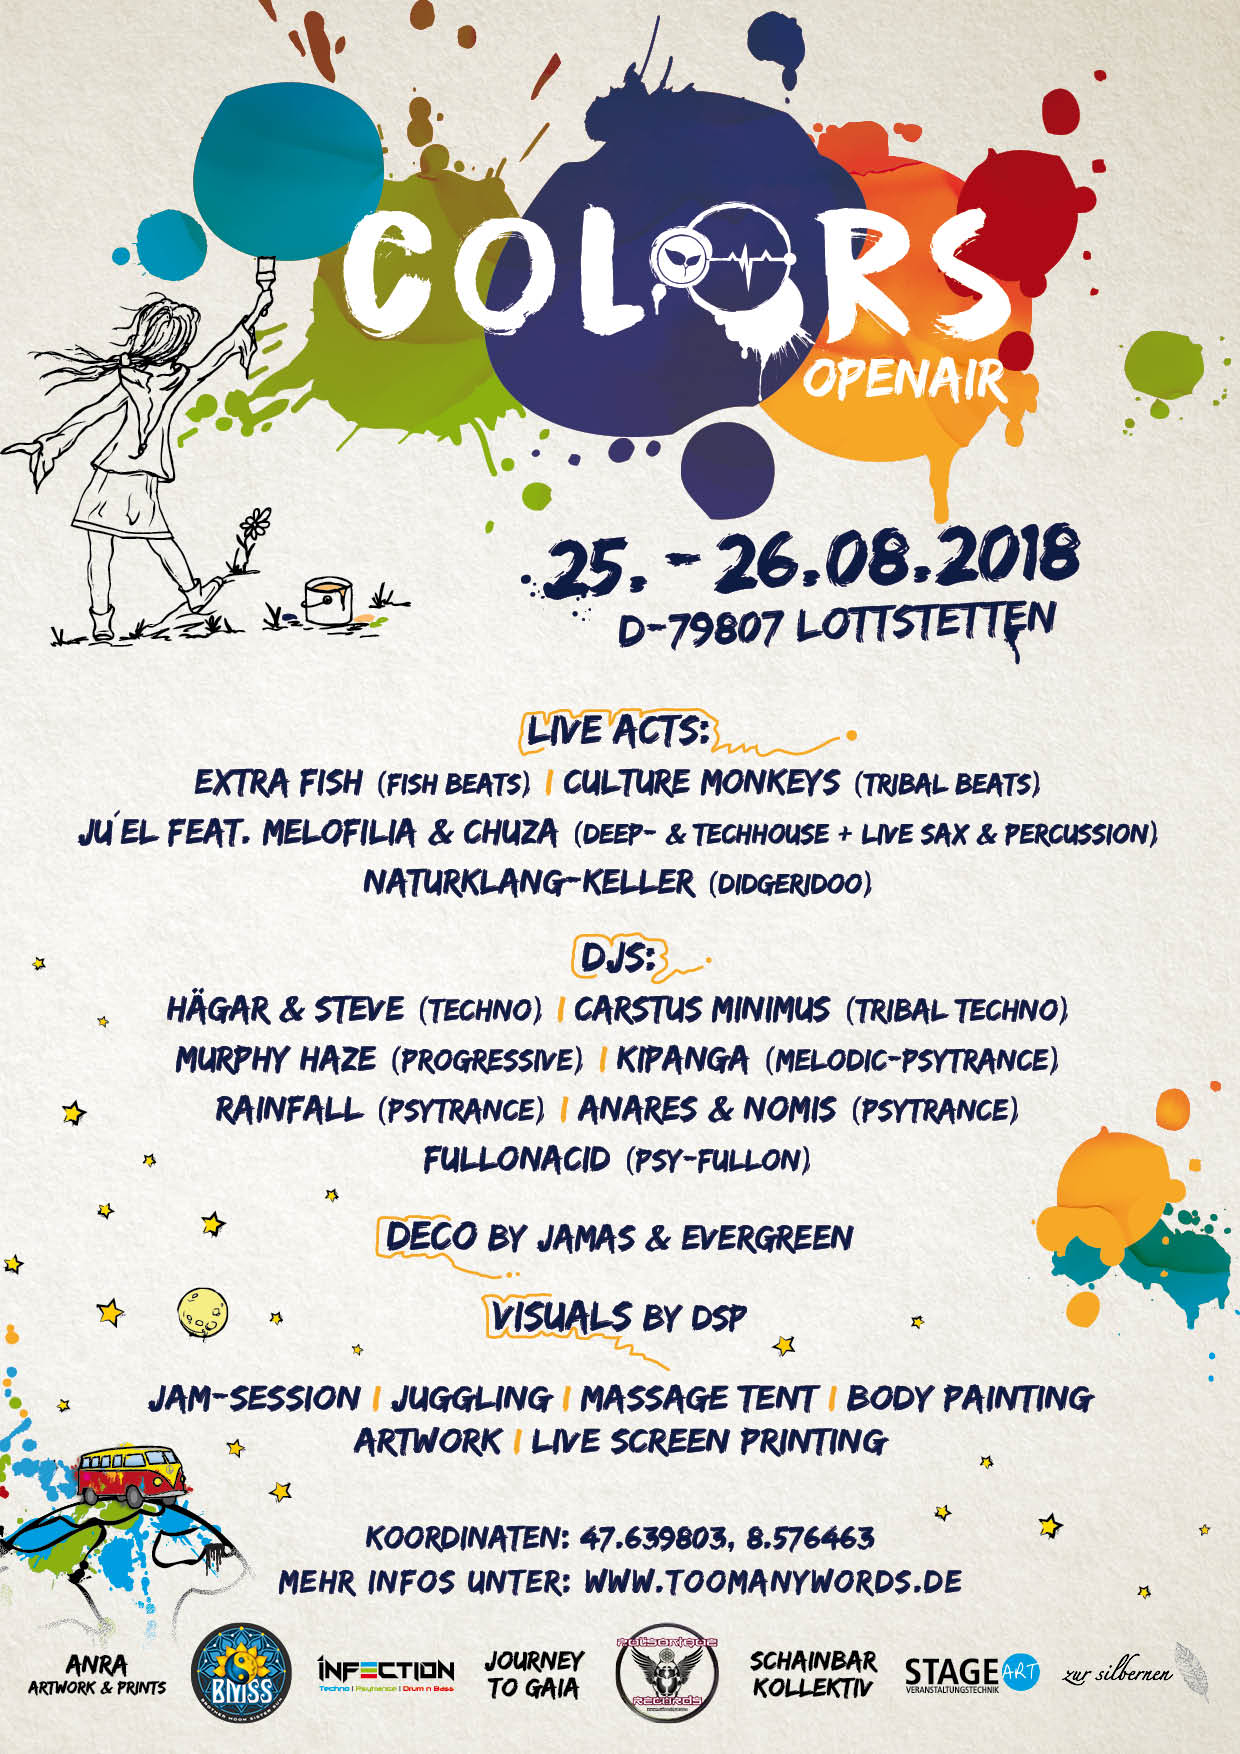 Colors Openair